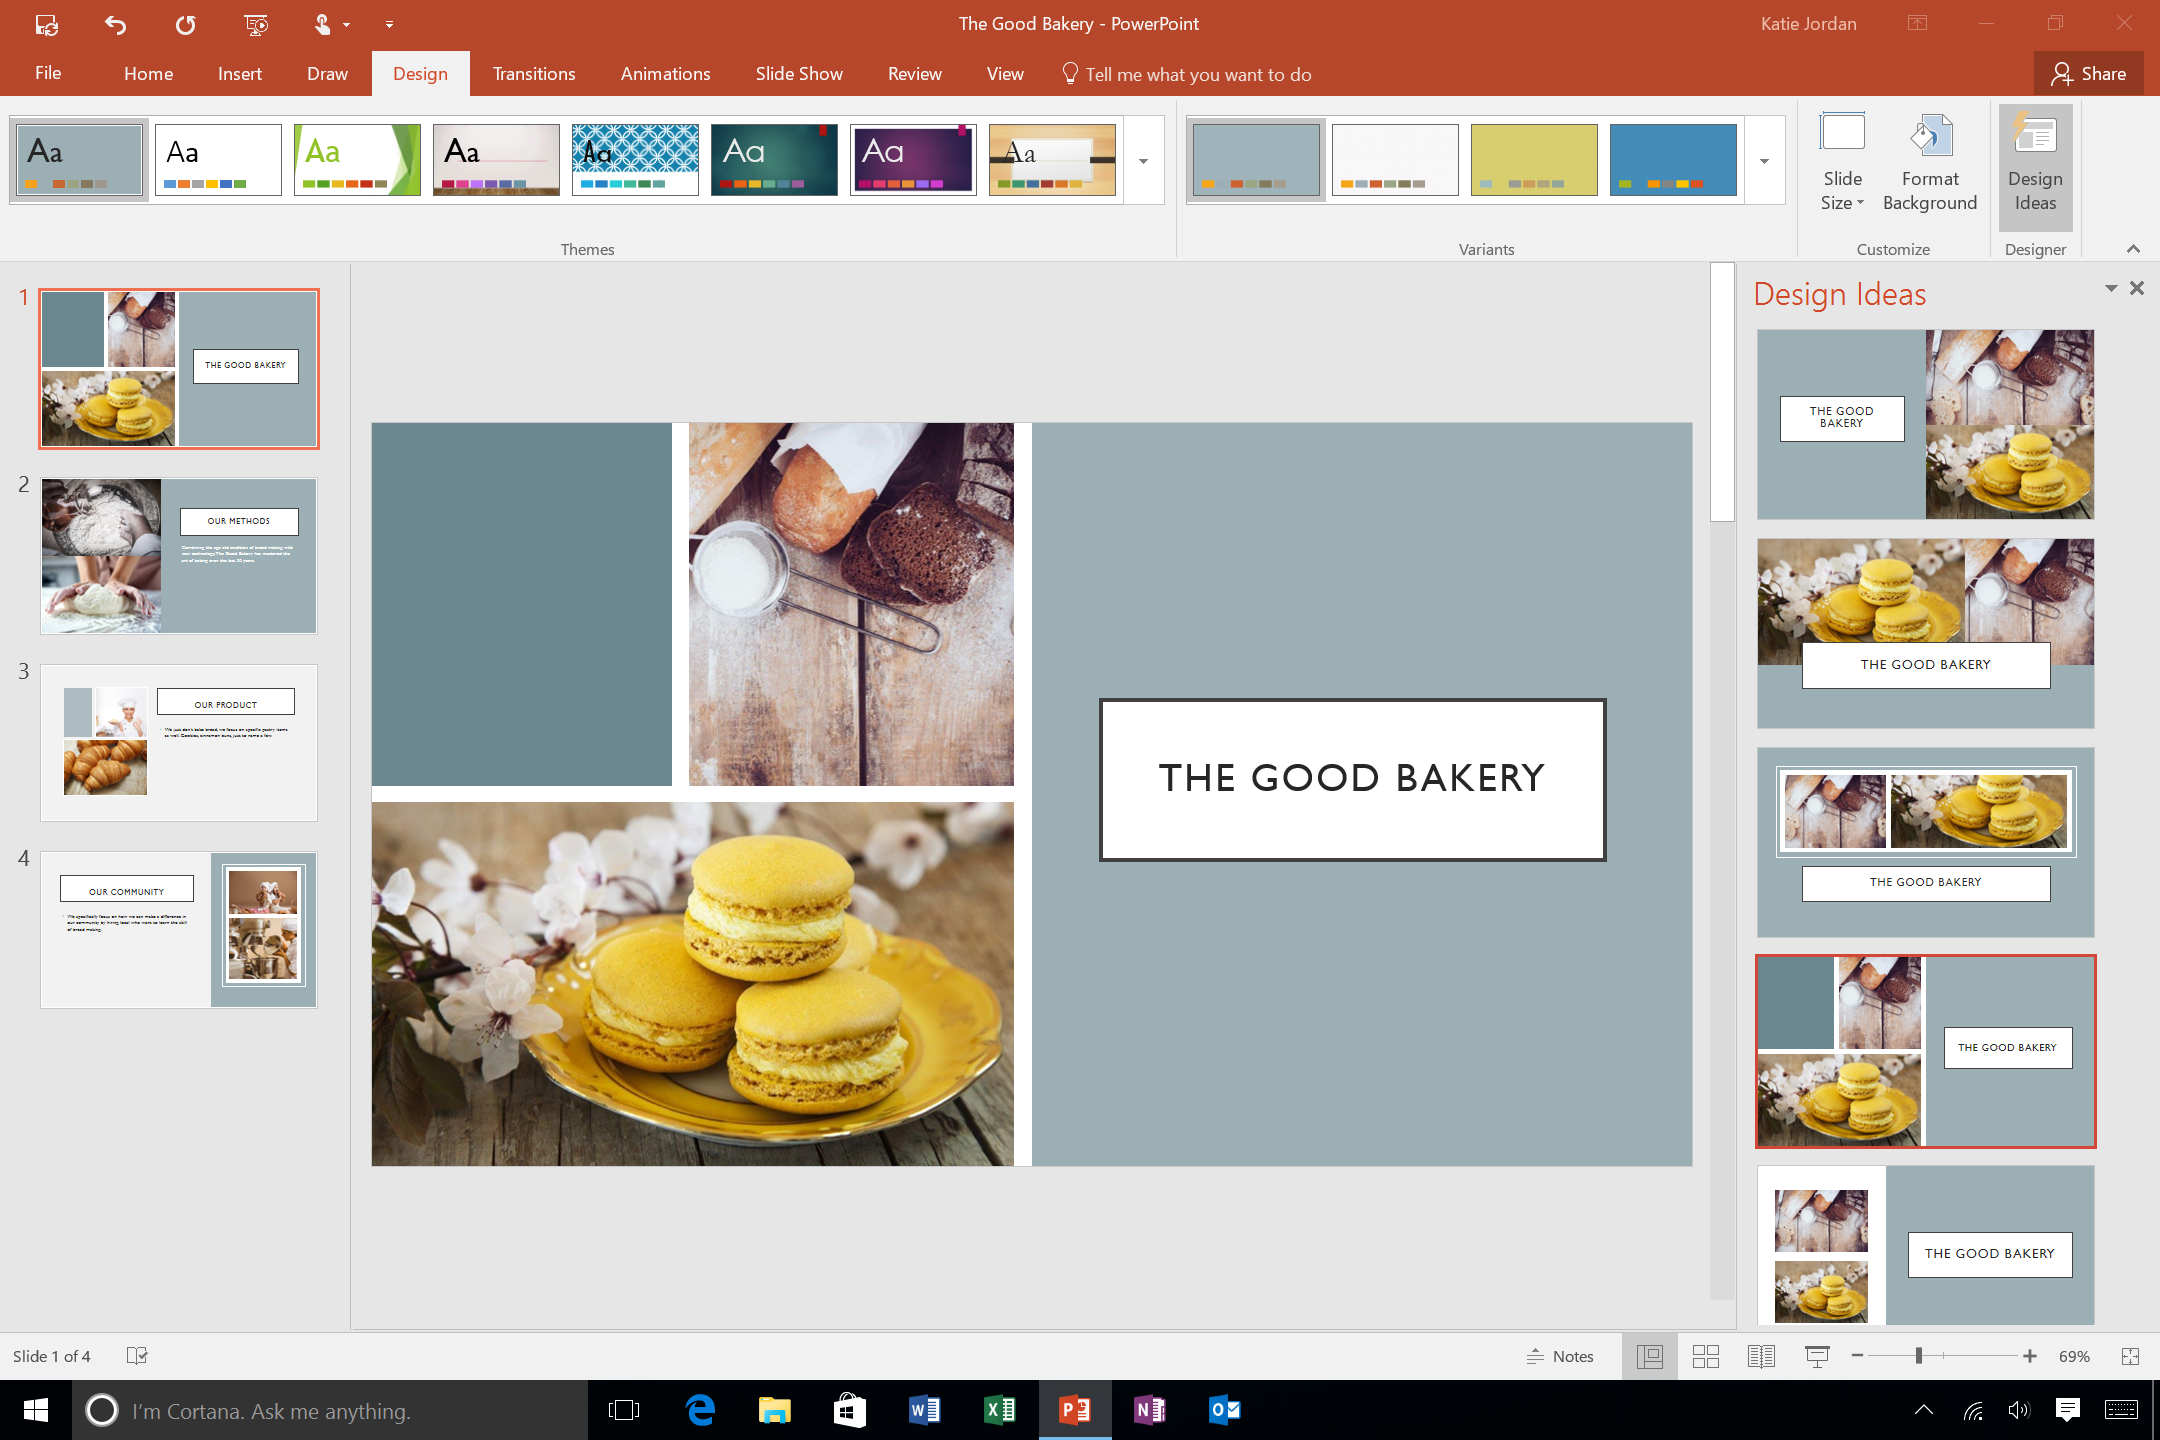 powerpoint designer what s new and what s next microsoft 365 blog